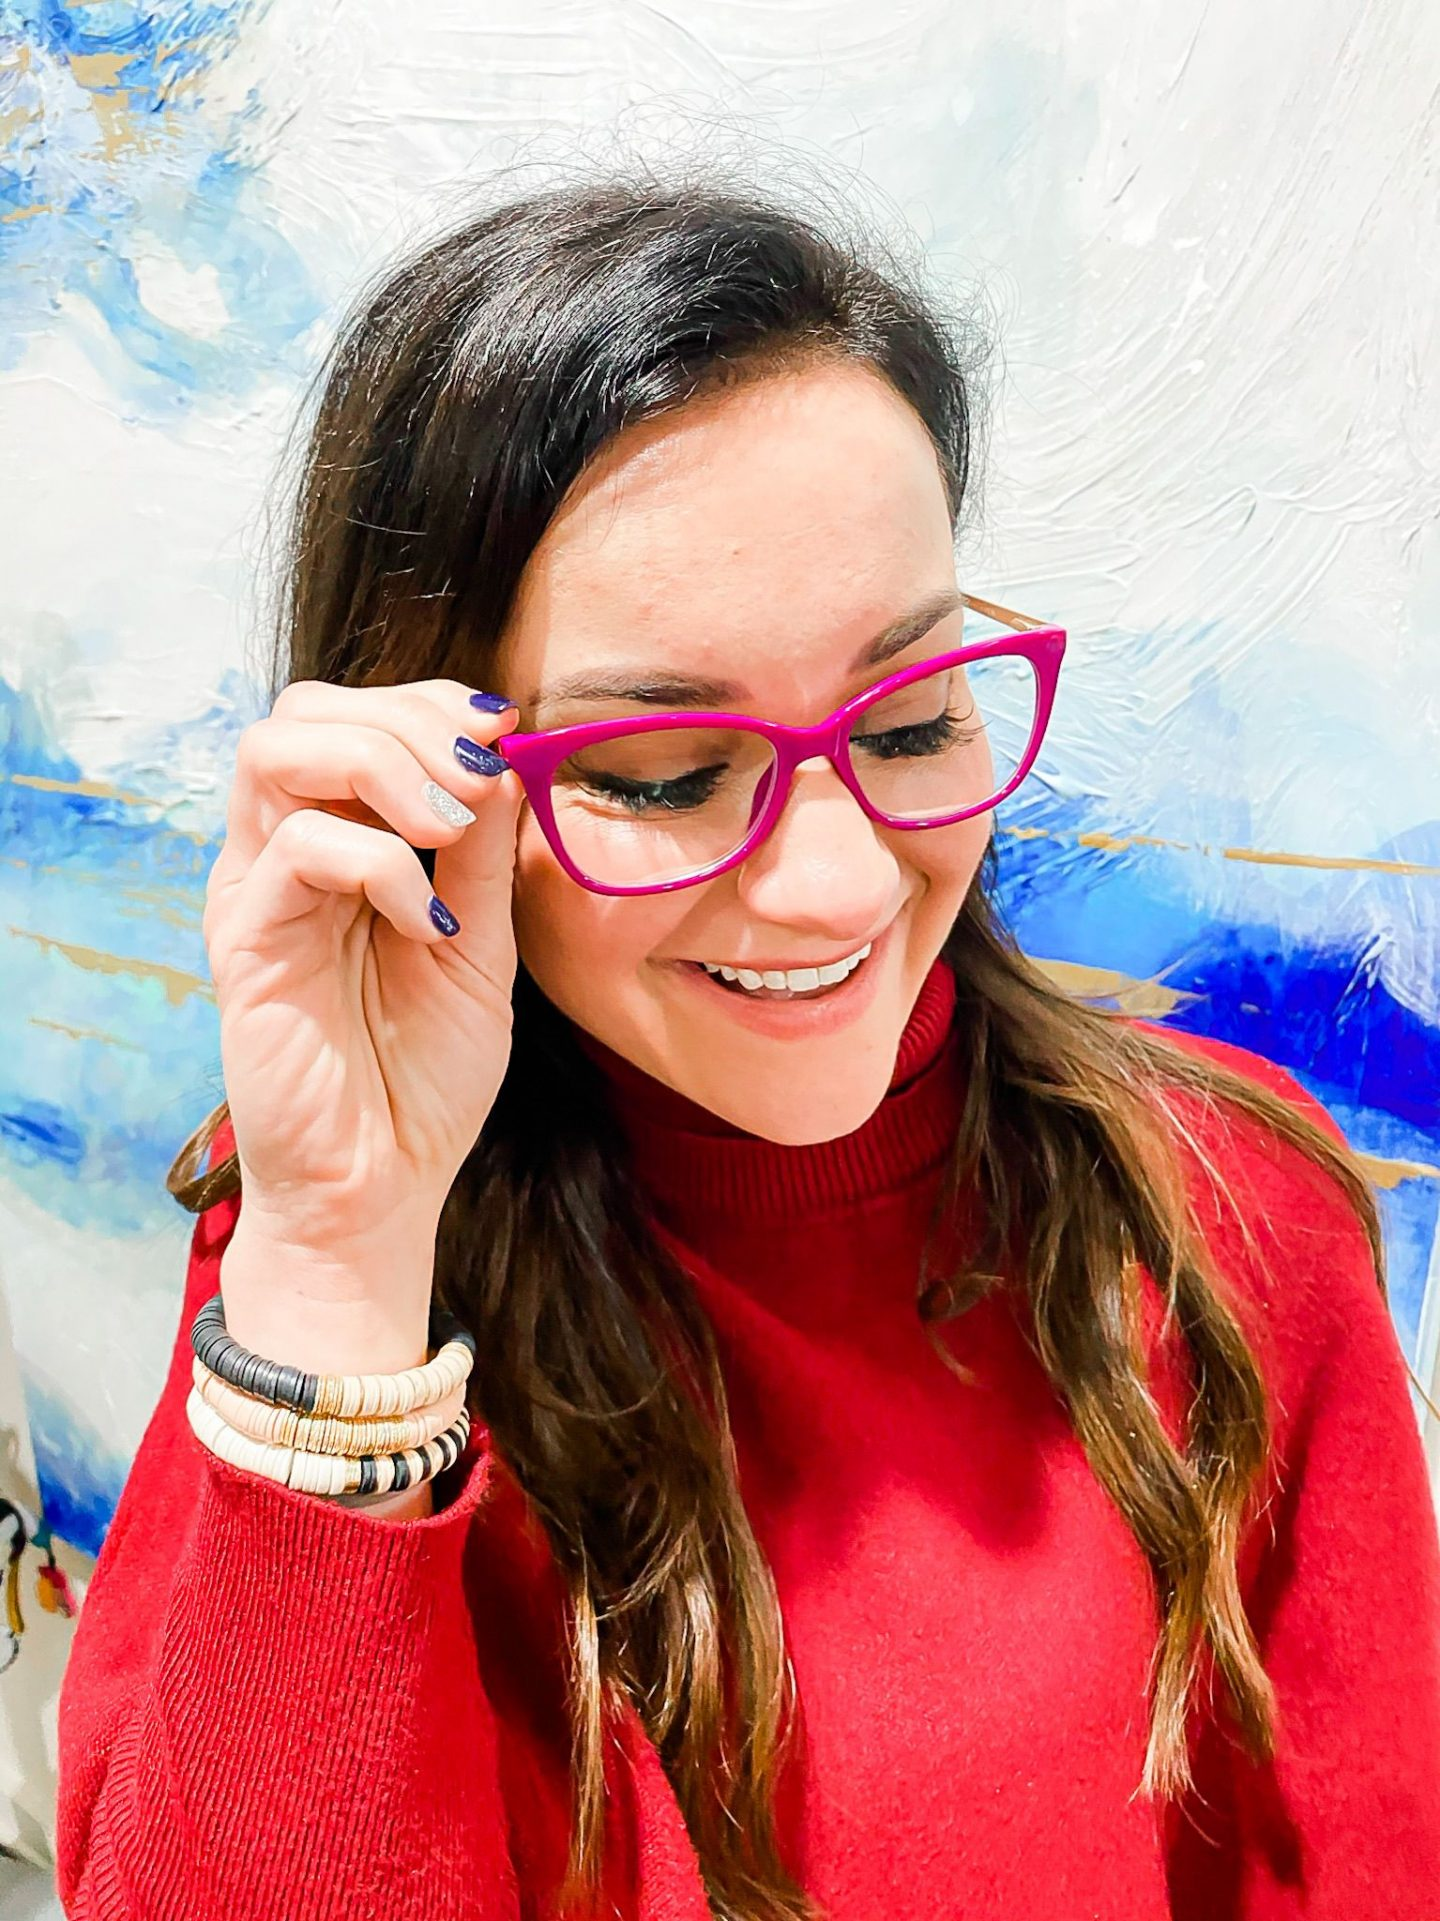 Brunette girl wearing pink glasses, blue light blocking glasses